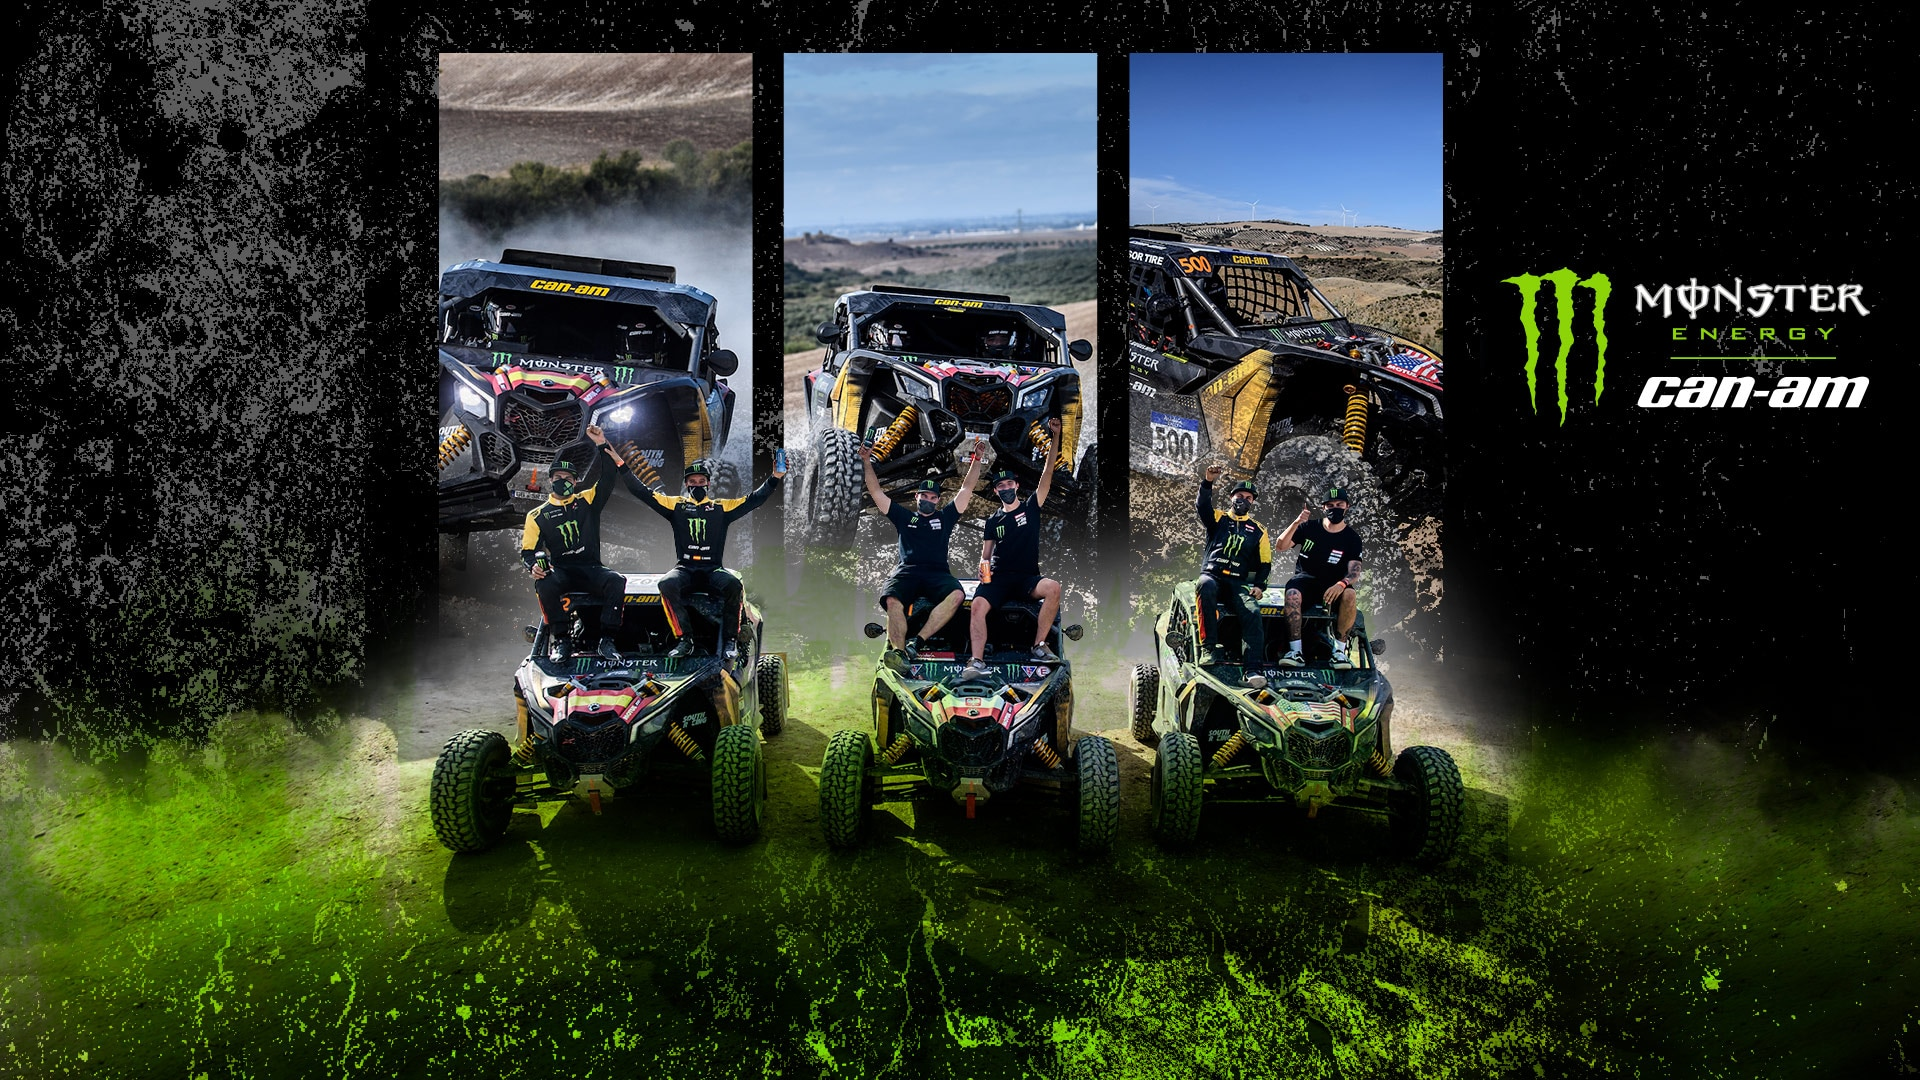 Team monster energy can-am at dakar 2021 race